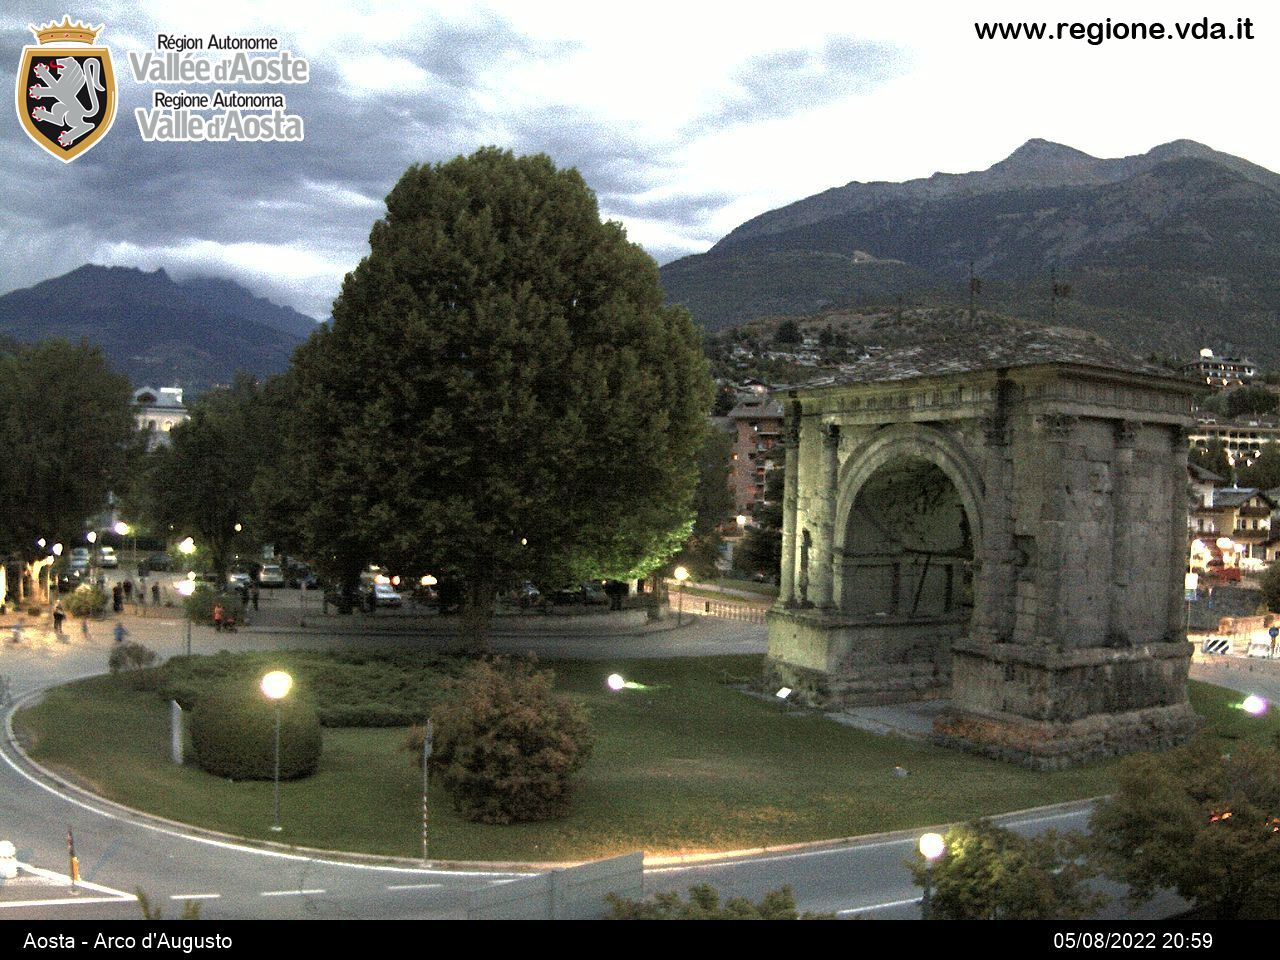 Webcam Aosta Arco d'Augusto